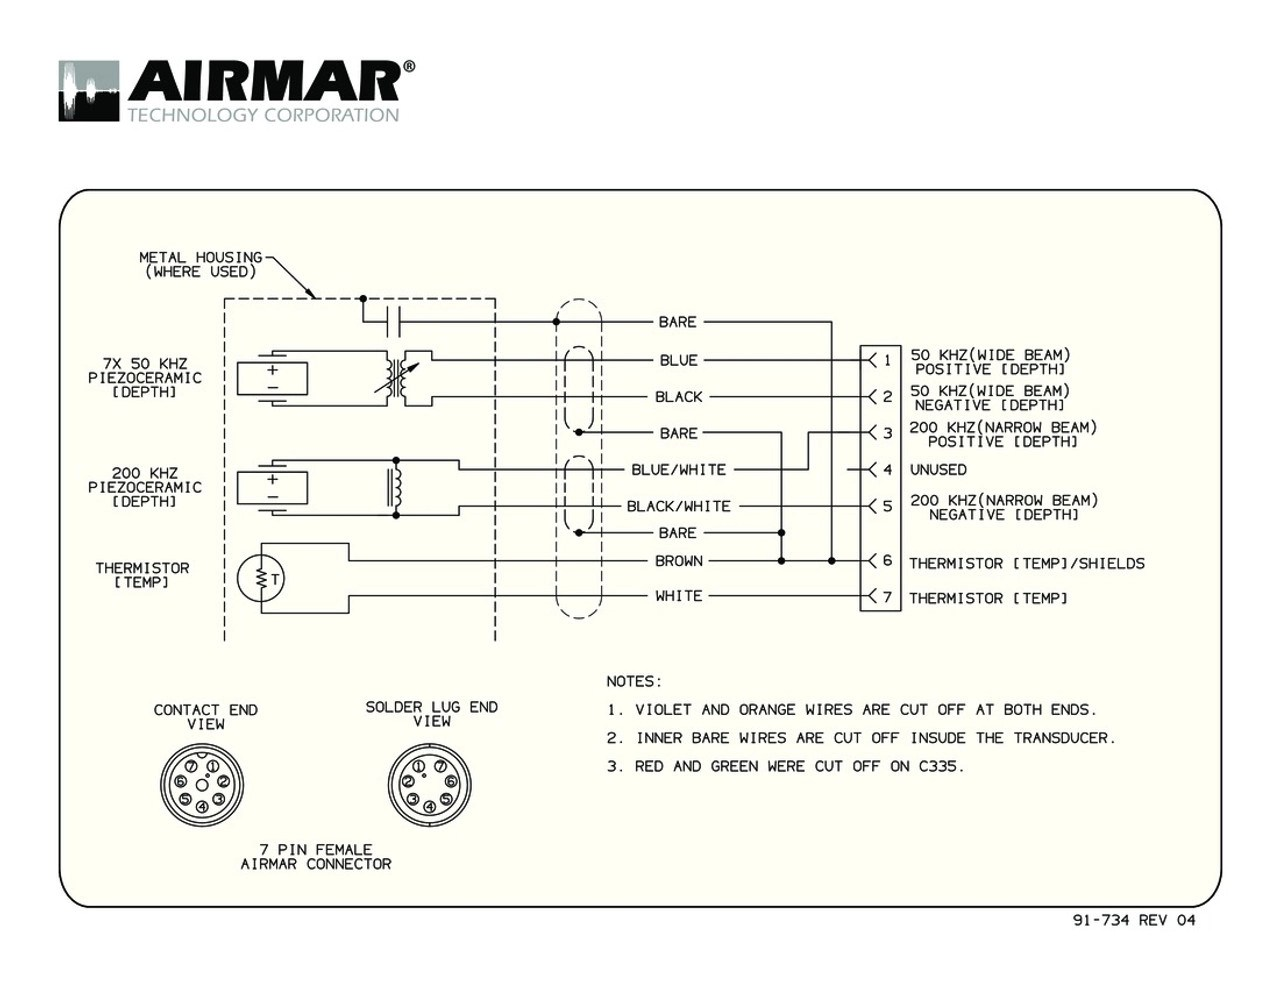 small resolution of depth temperature 1kw transducers with simrad 7 pin connector airmar wiring diagram